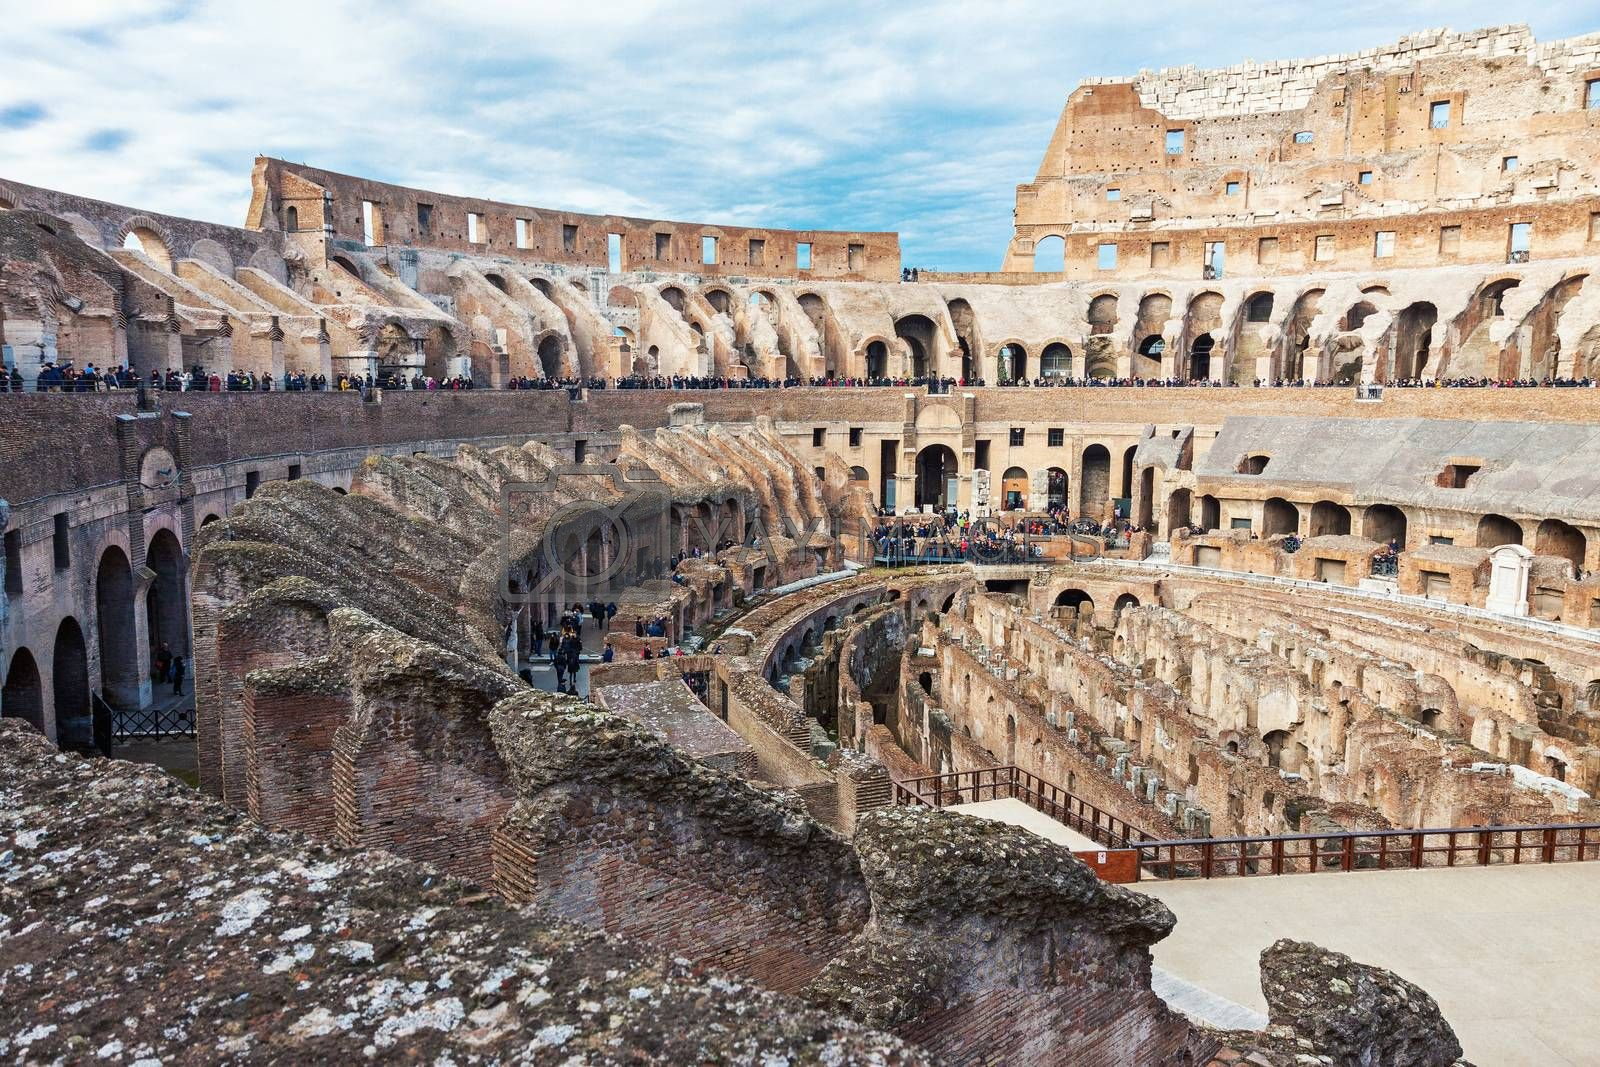 Royalty free image of Interior of Colosseum in Rome by Cebas